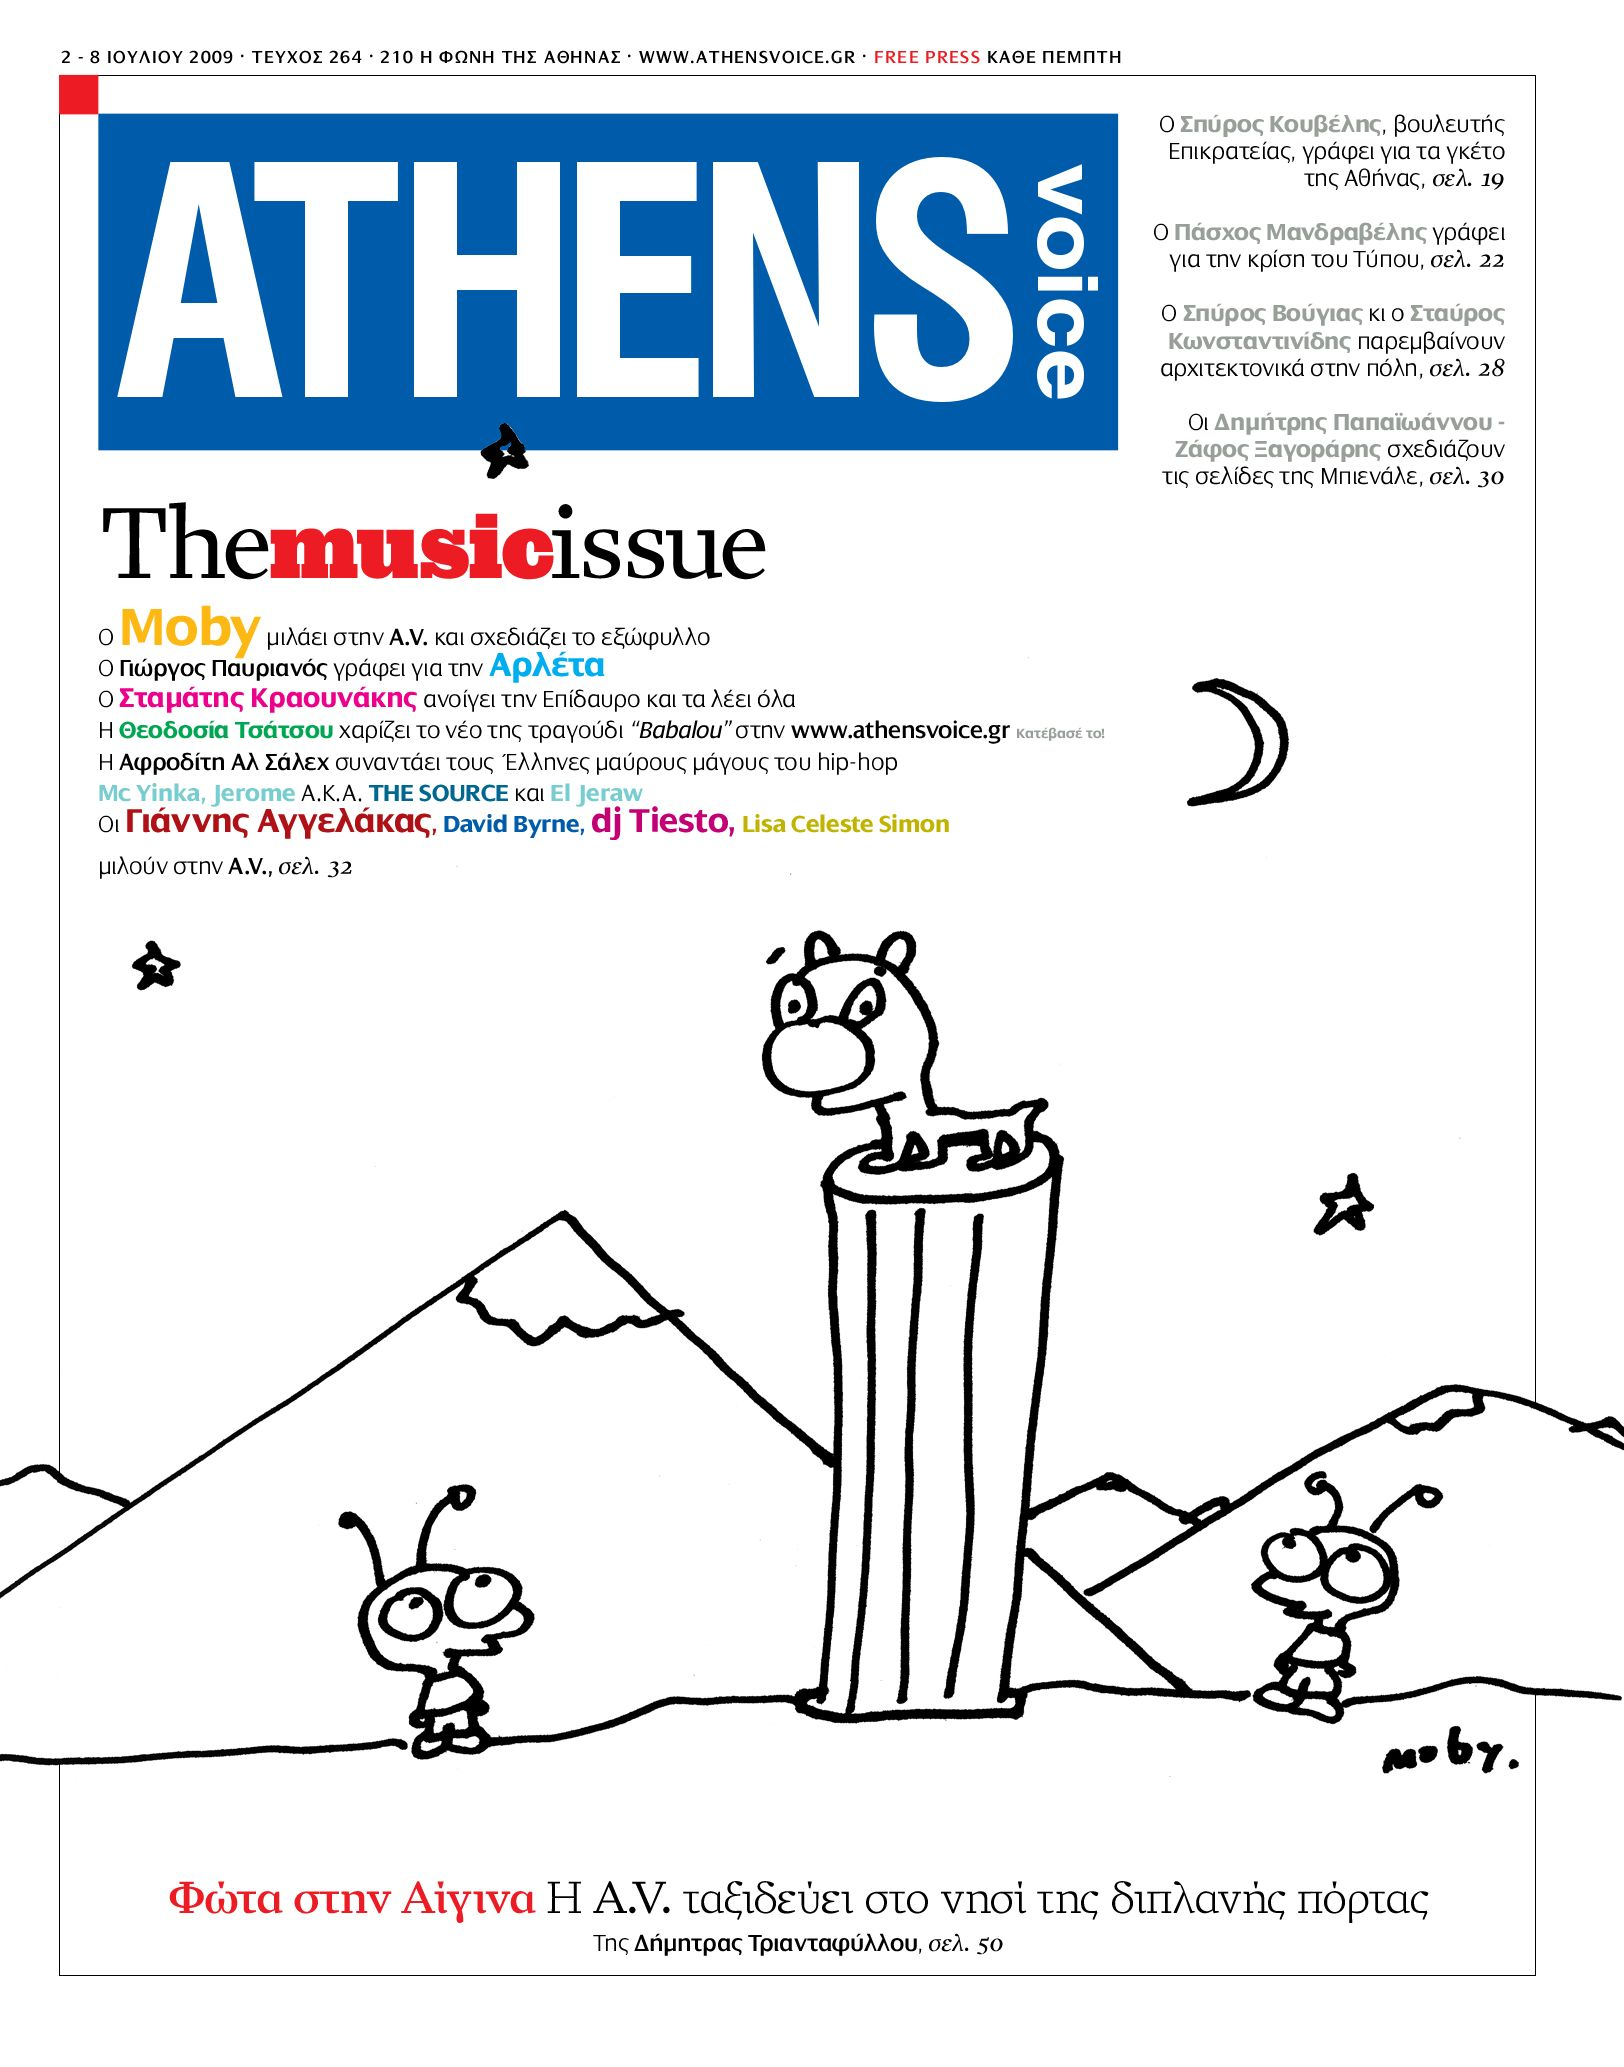 Athens Voice 264 by Athens Voice - issuu 4b56c610125